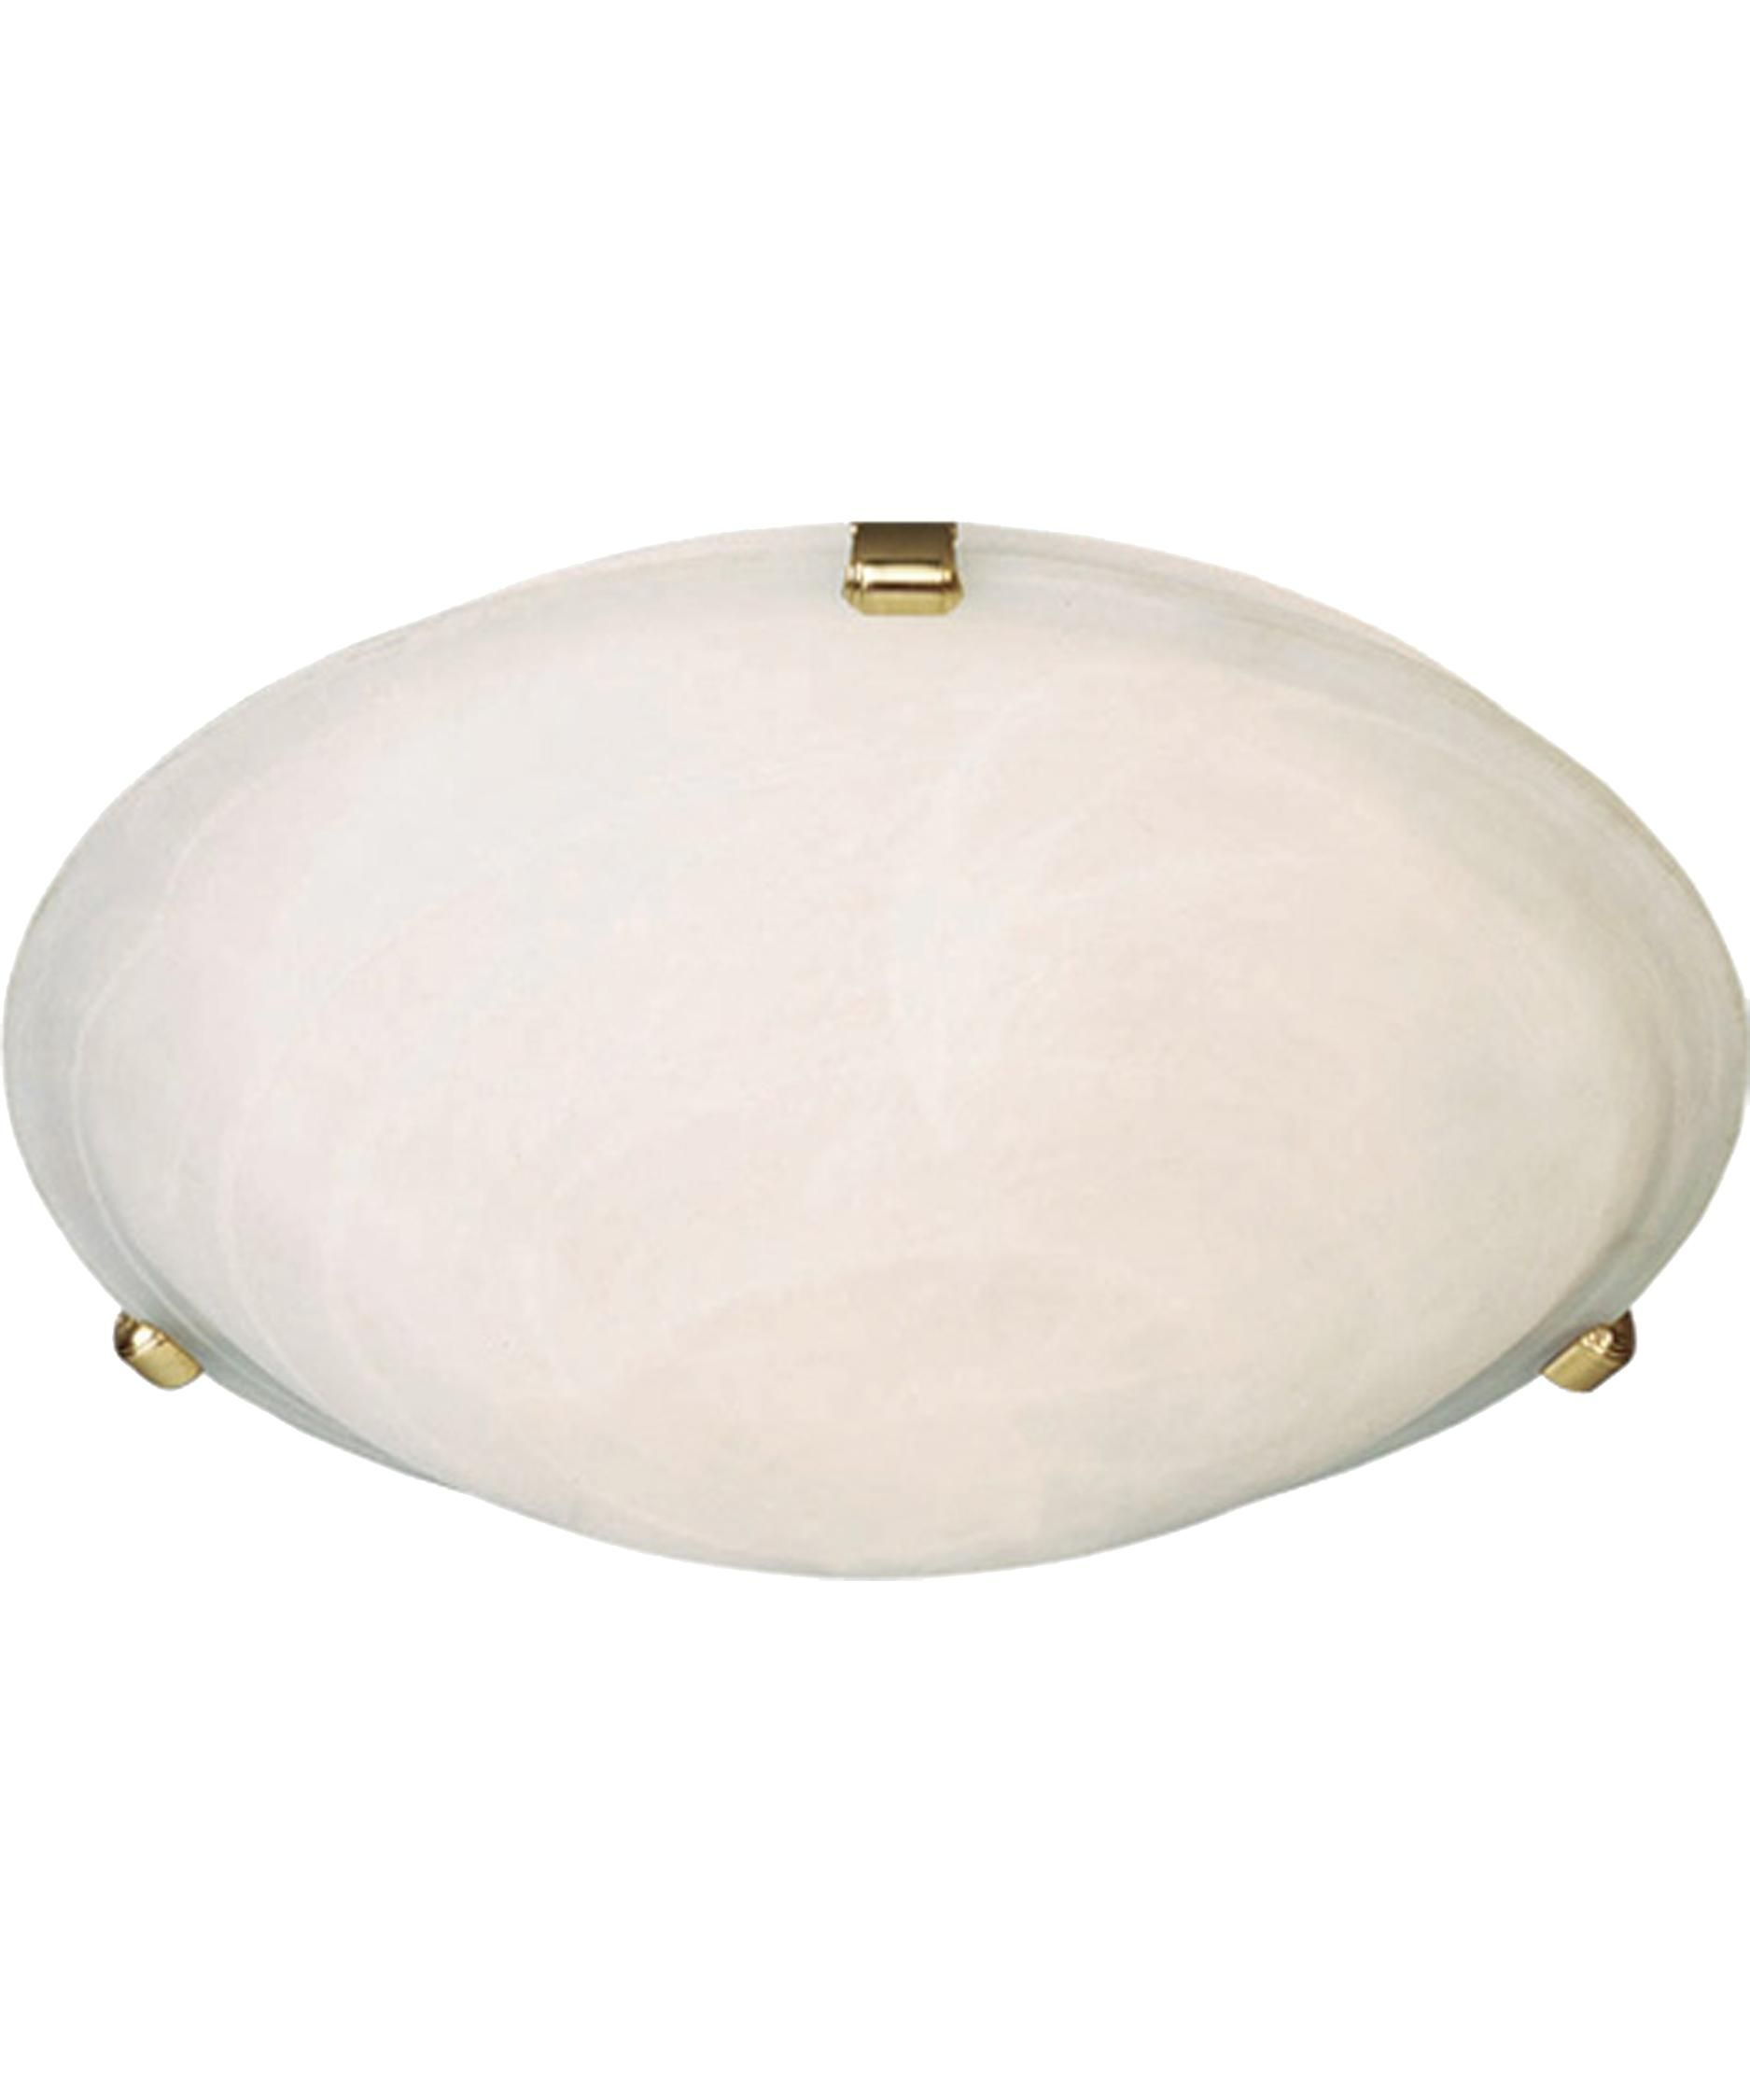 Maxim Lighting 2680MRSN Orleans Flush Mount | Capitol Lighting 1800lighting.com